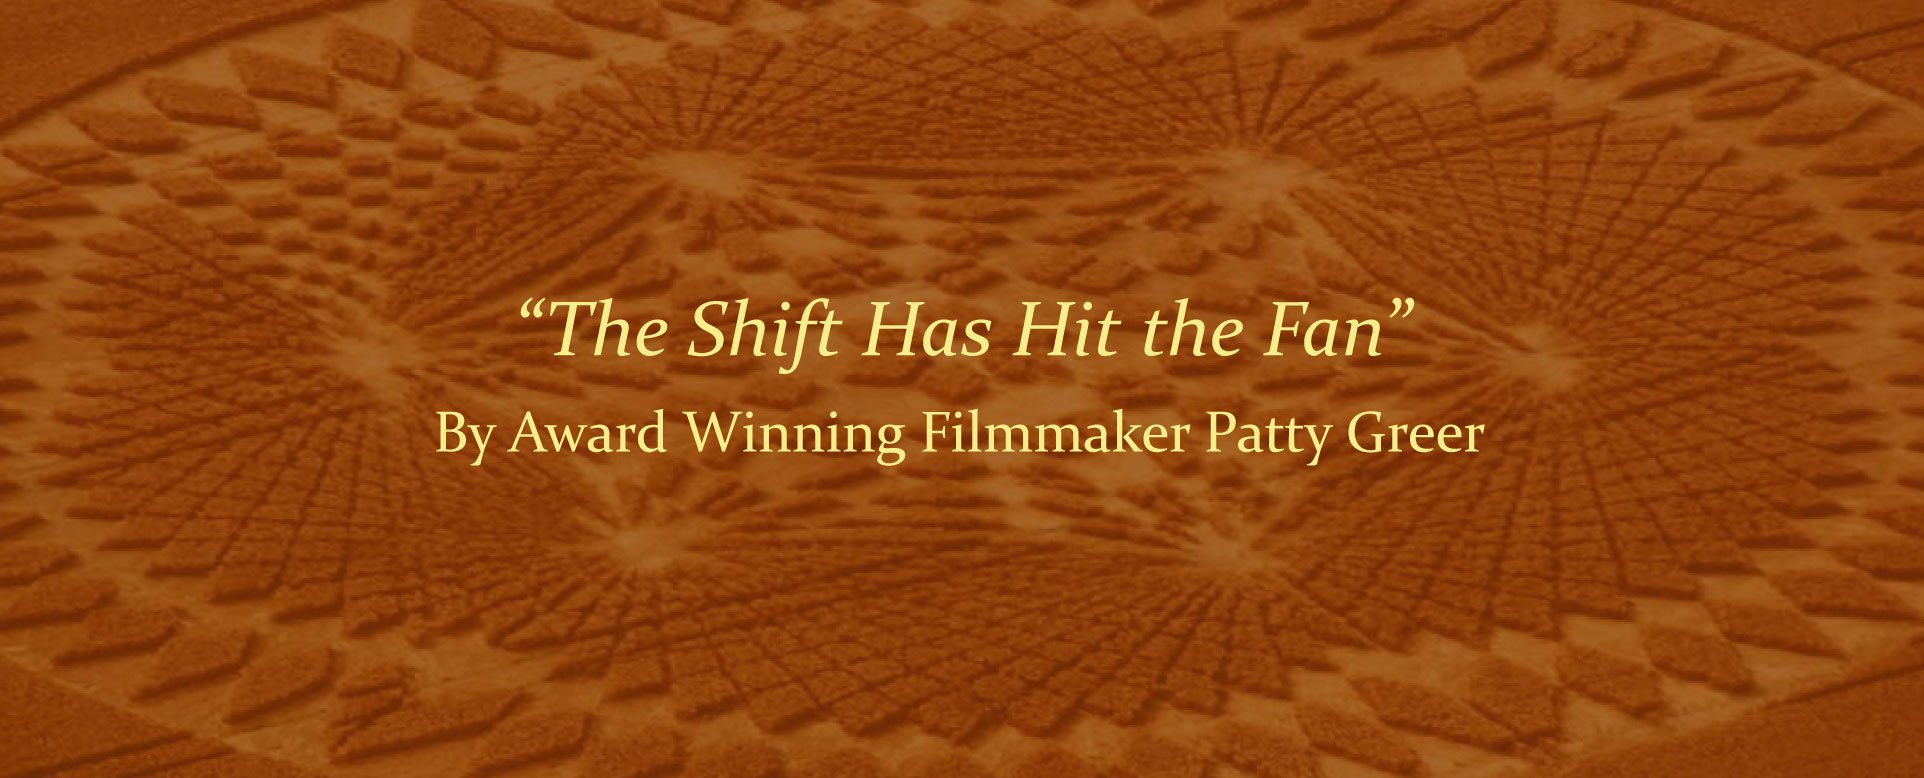 shift-has-hit-the-fan---movie-page